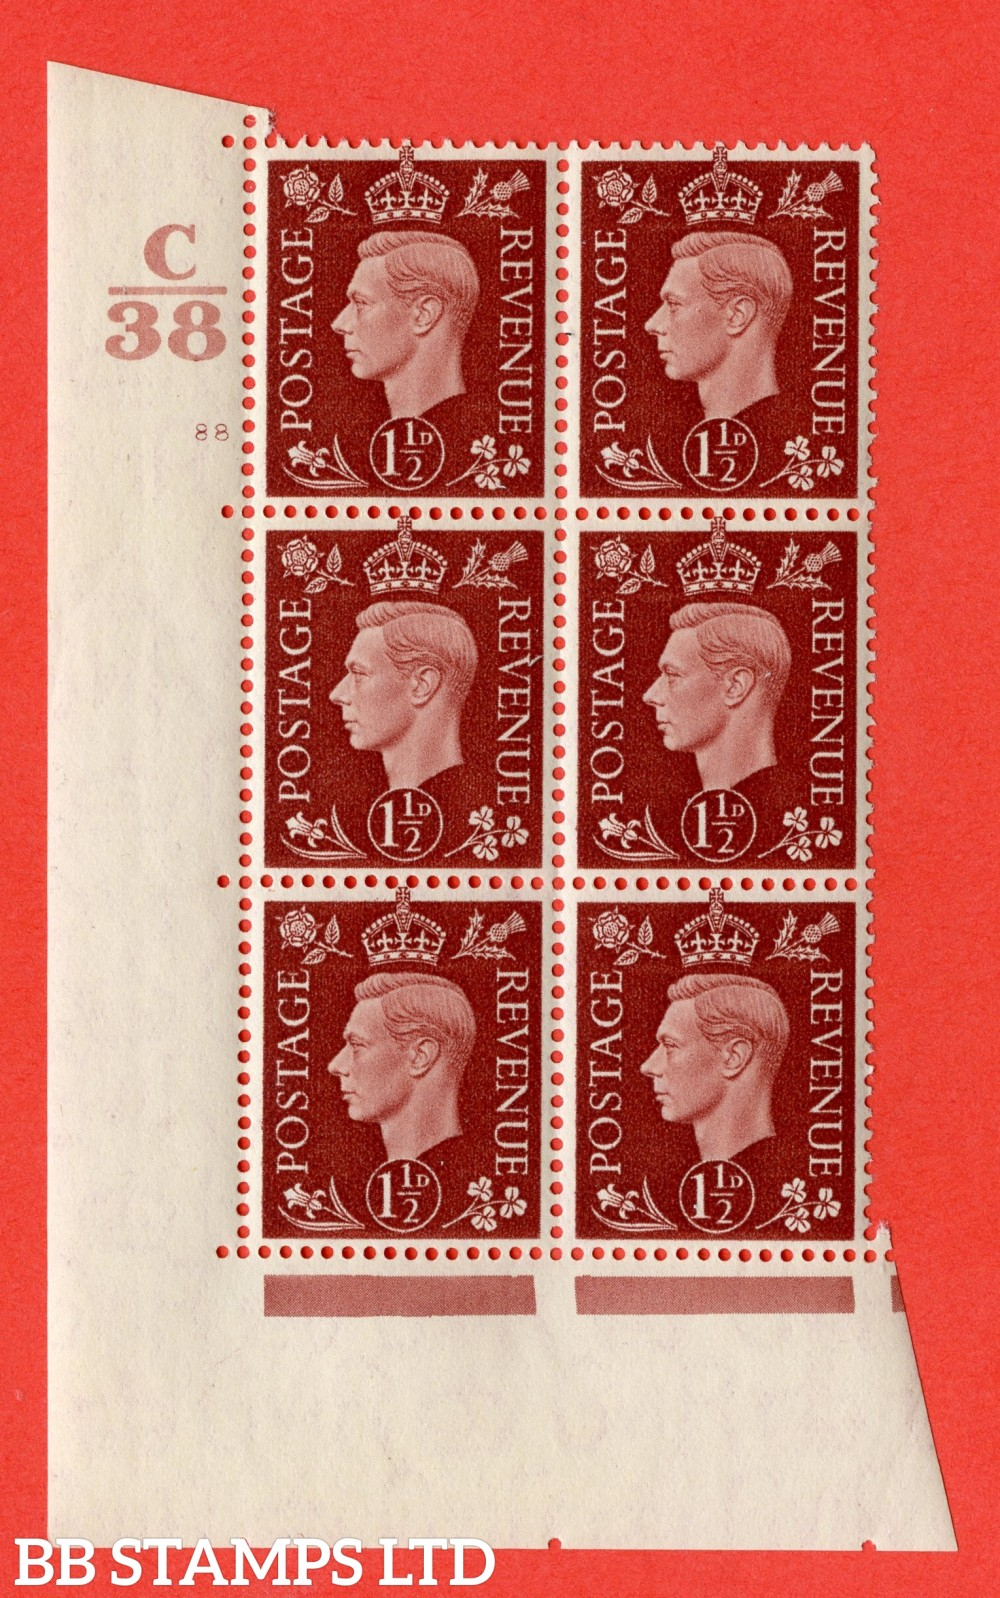 """SG. 464. Q7. 1½d Red-Brown. A superb UNMOUNTED MINT """" Control C38 cylinder 88 no dot """" block of 6 with perf type 5 E/I."""